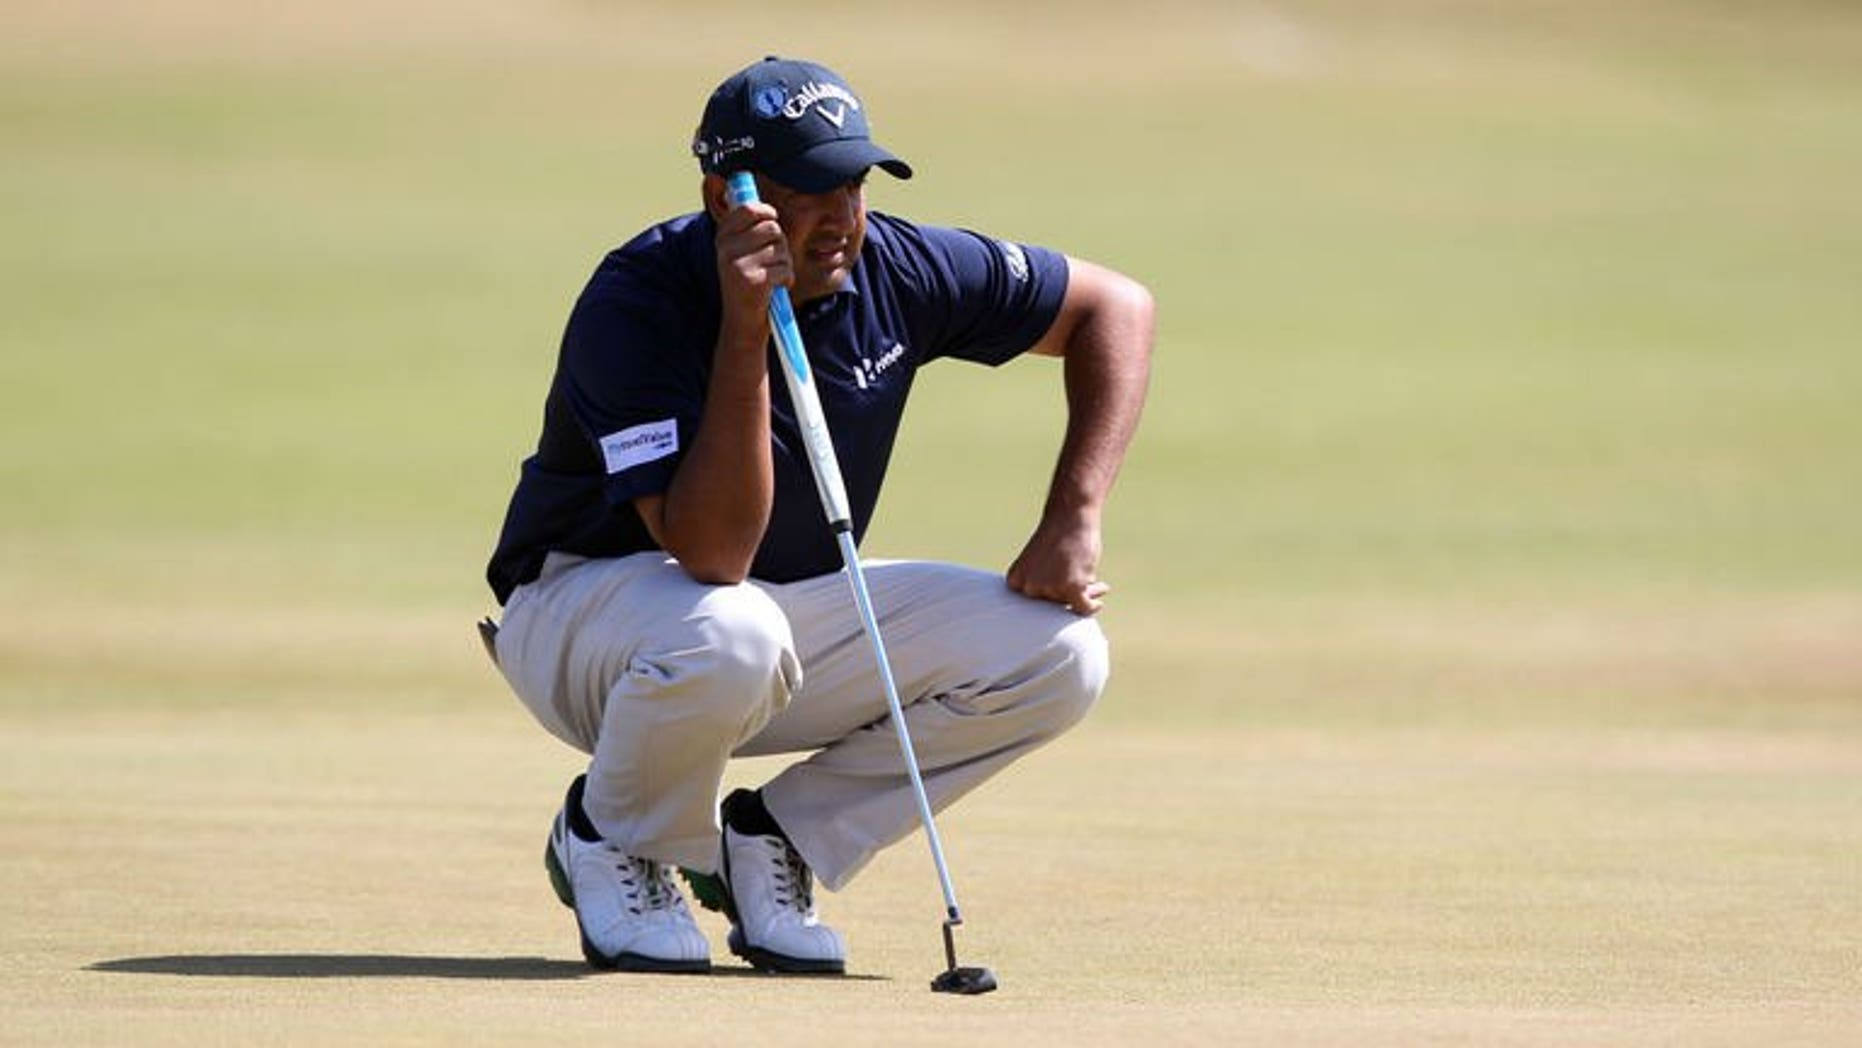 India's Shiv Kapur lines up a putt on the first green during the third round of the 2013 British Open Golf Championship at Muirfield golf course at Gullane in Scotland on July 20, 2013.